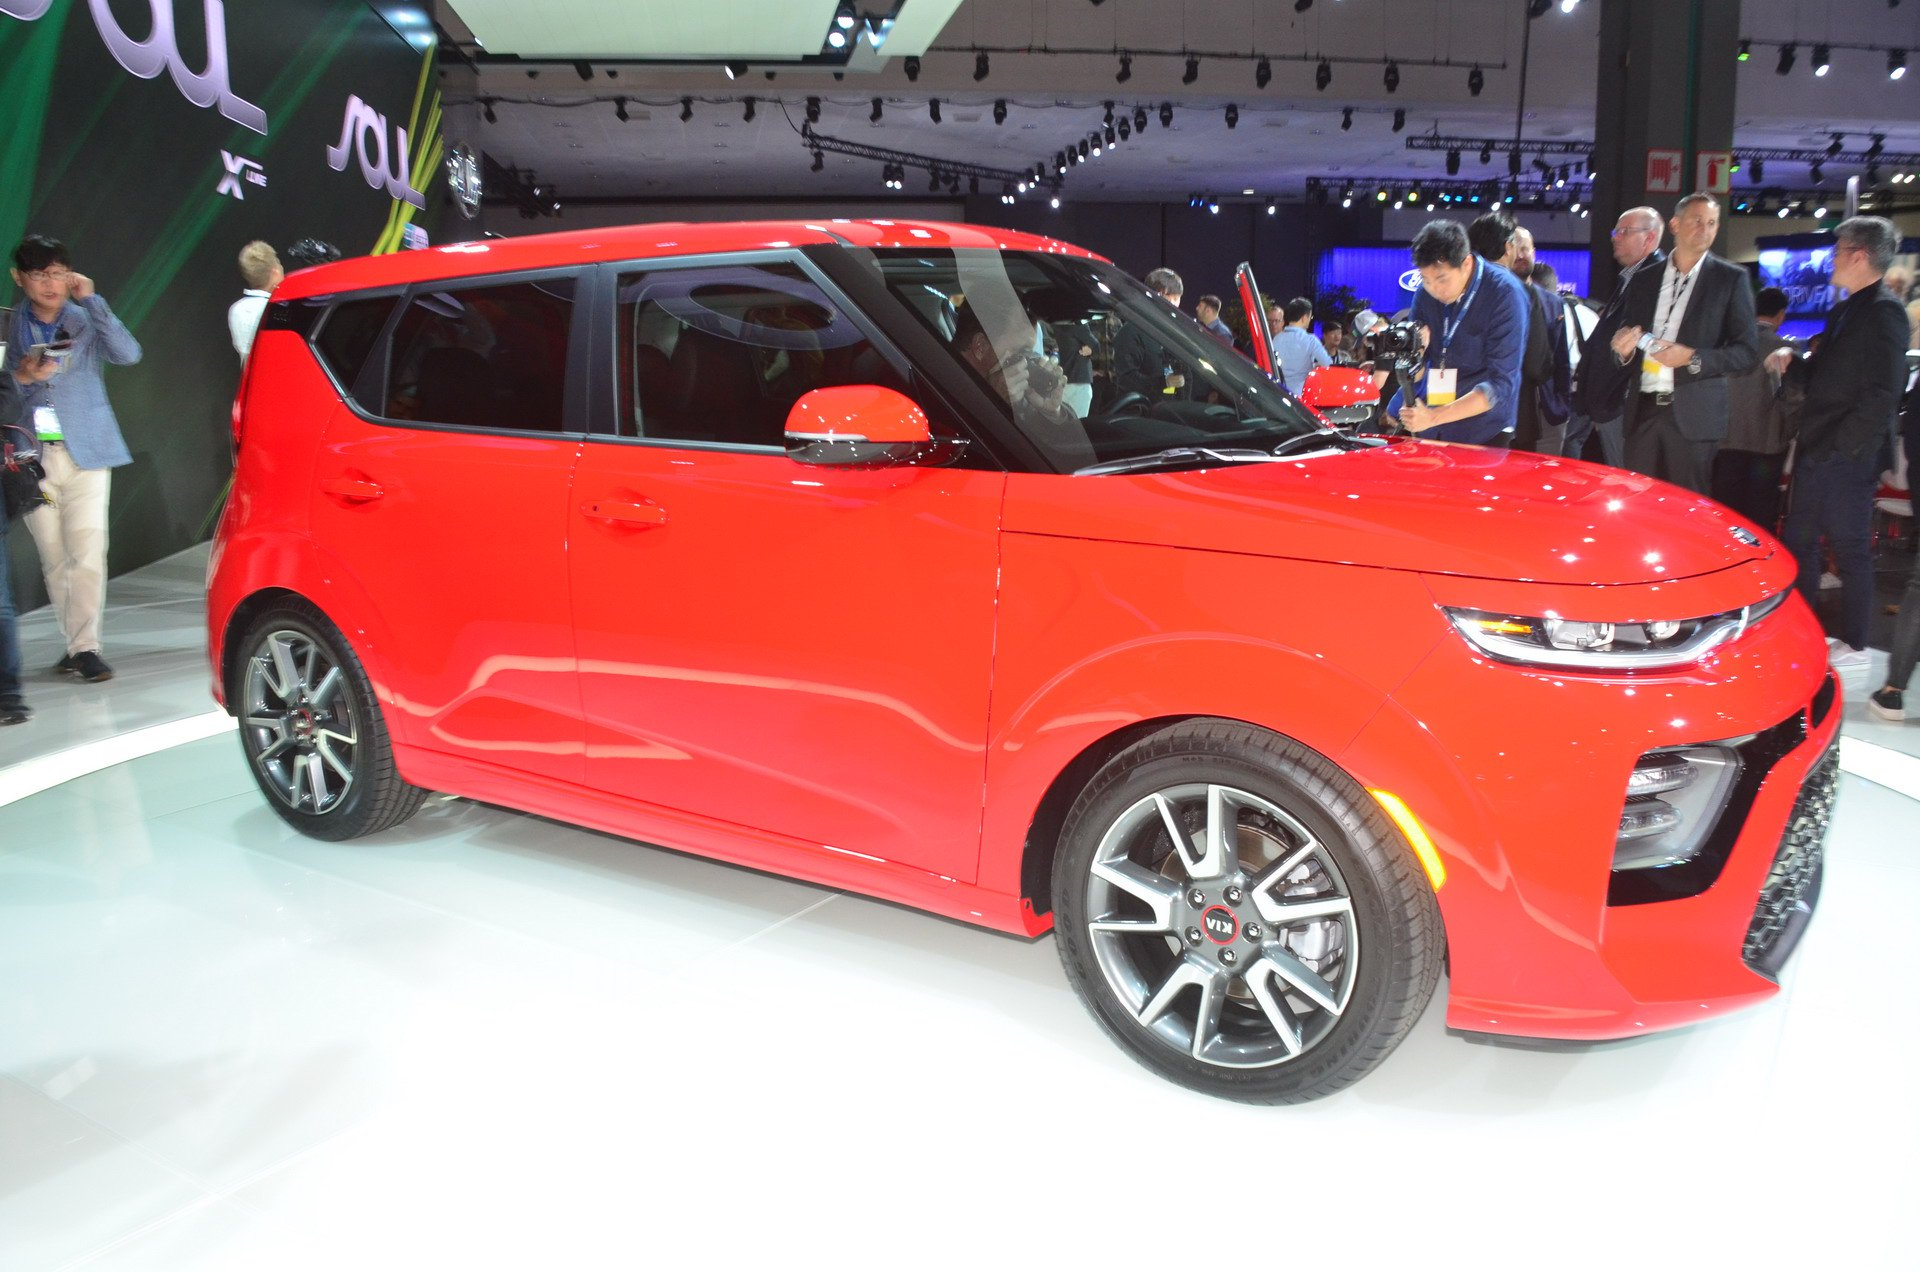 2020 Kia Soul Unveiled With New Design And An Electric - 2022 Kia Soul Engine 1.6 L 4-Cylinder Specs Options, Rumor